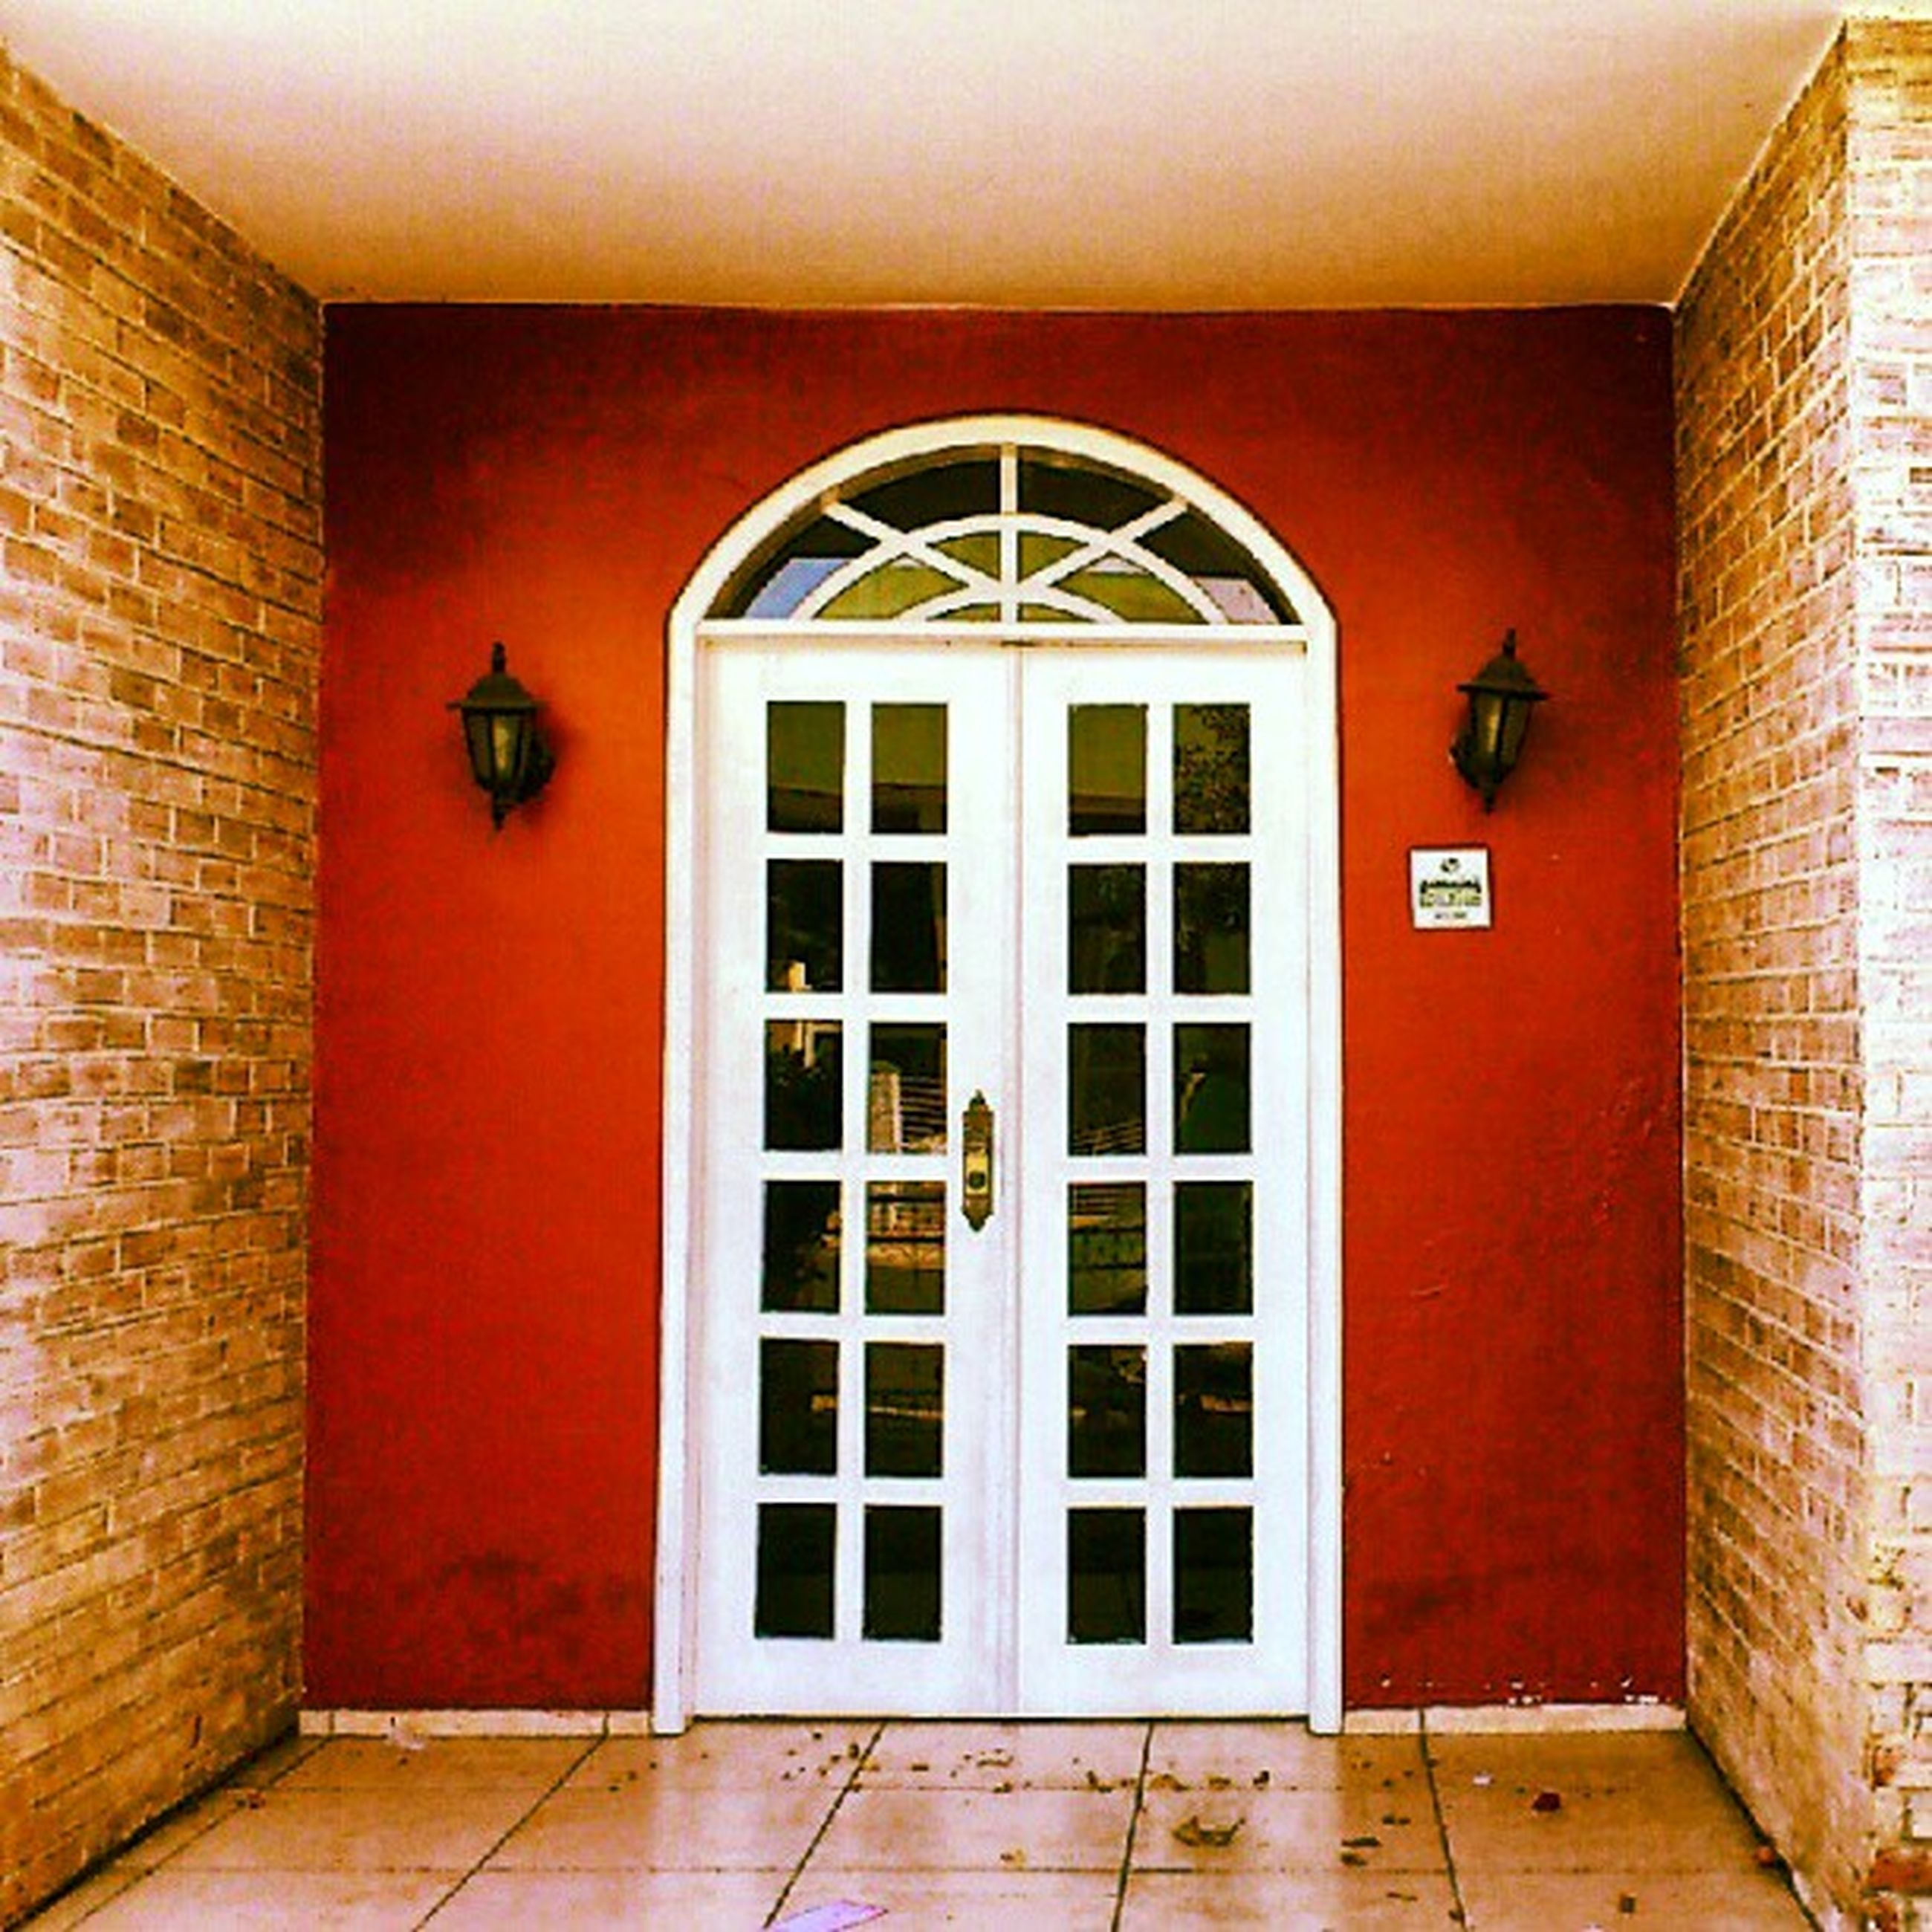 architecture, door, built structure, red, closed, building exterior, entrance, indoors, wall - building feature, window, house, wall, doorway, brick wall, safety, building, closed door, wood - material, no people, protection